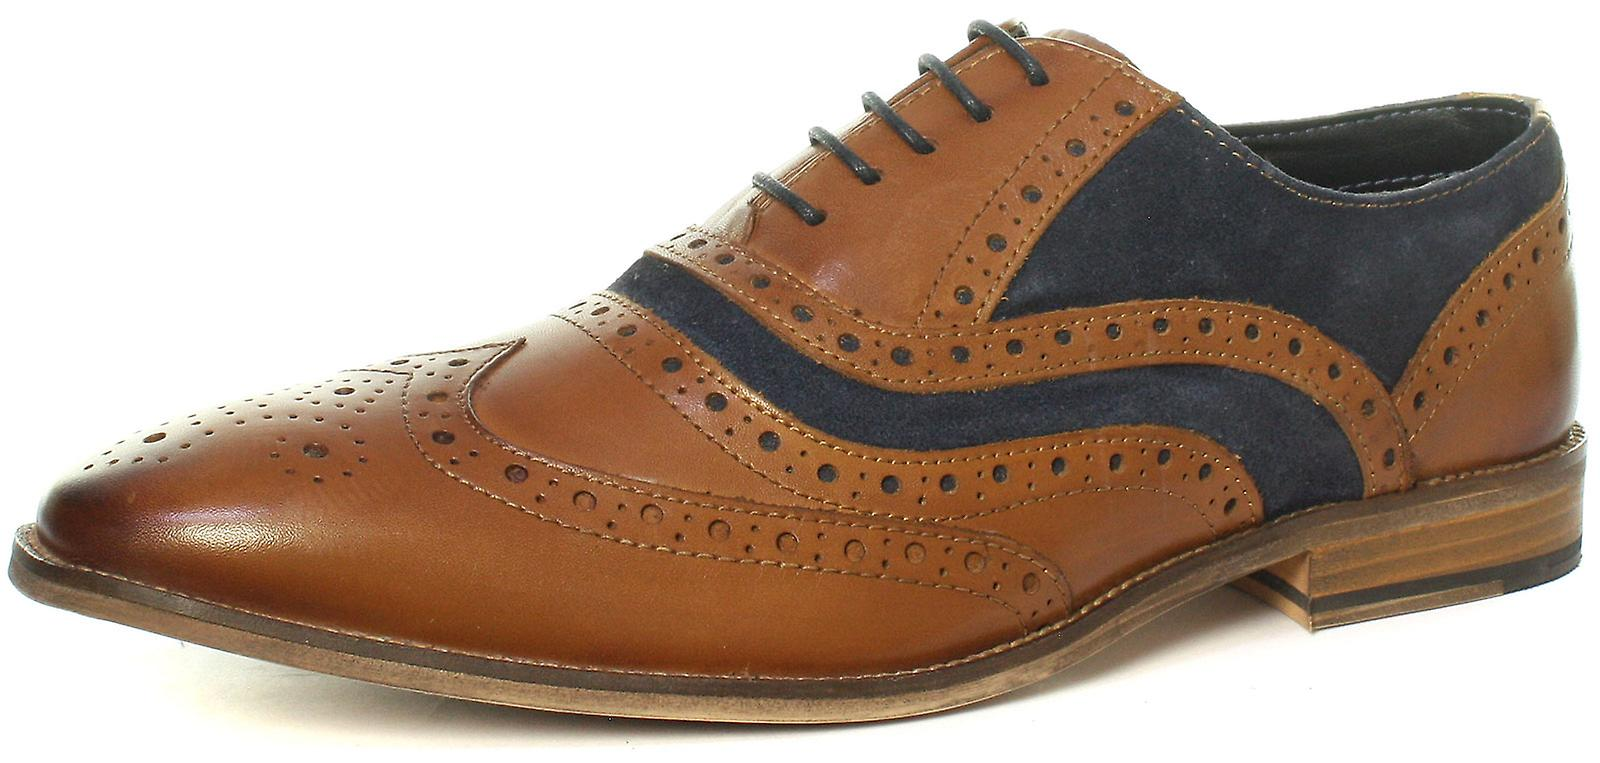 Roamers M001BT 5 Eyelet Brogue Oxford Tan Navy Mens chaussures